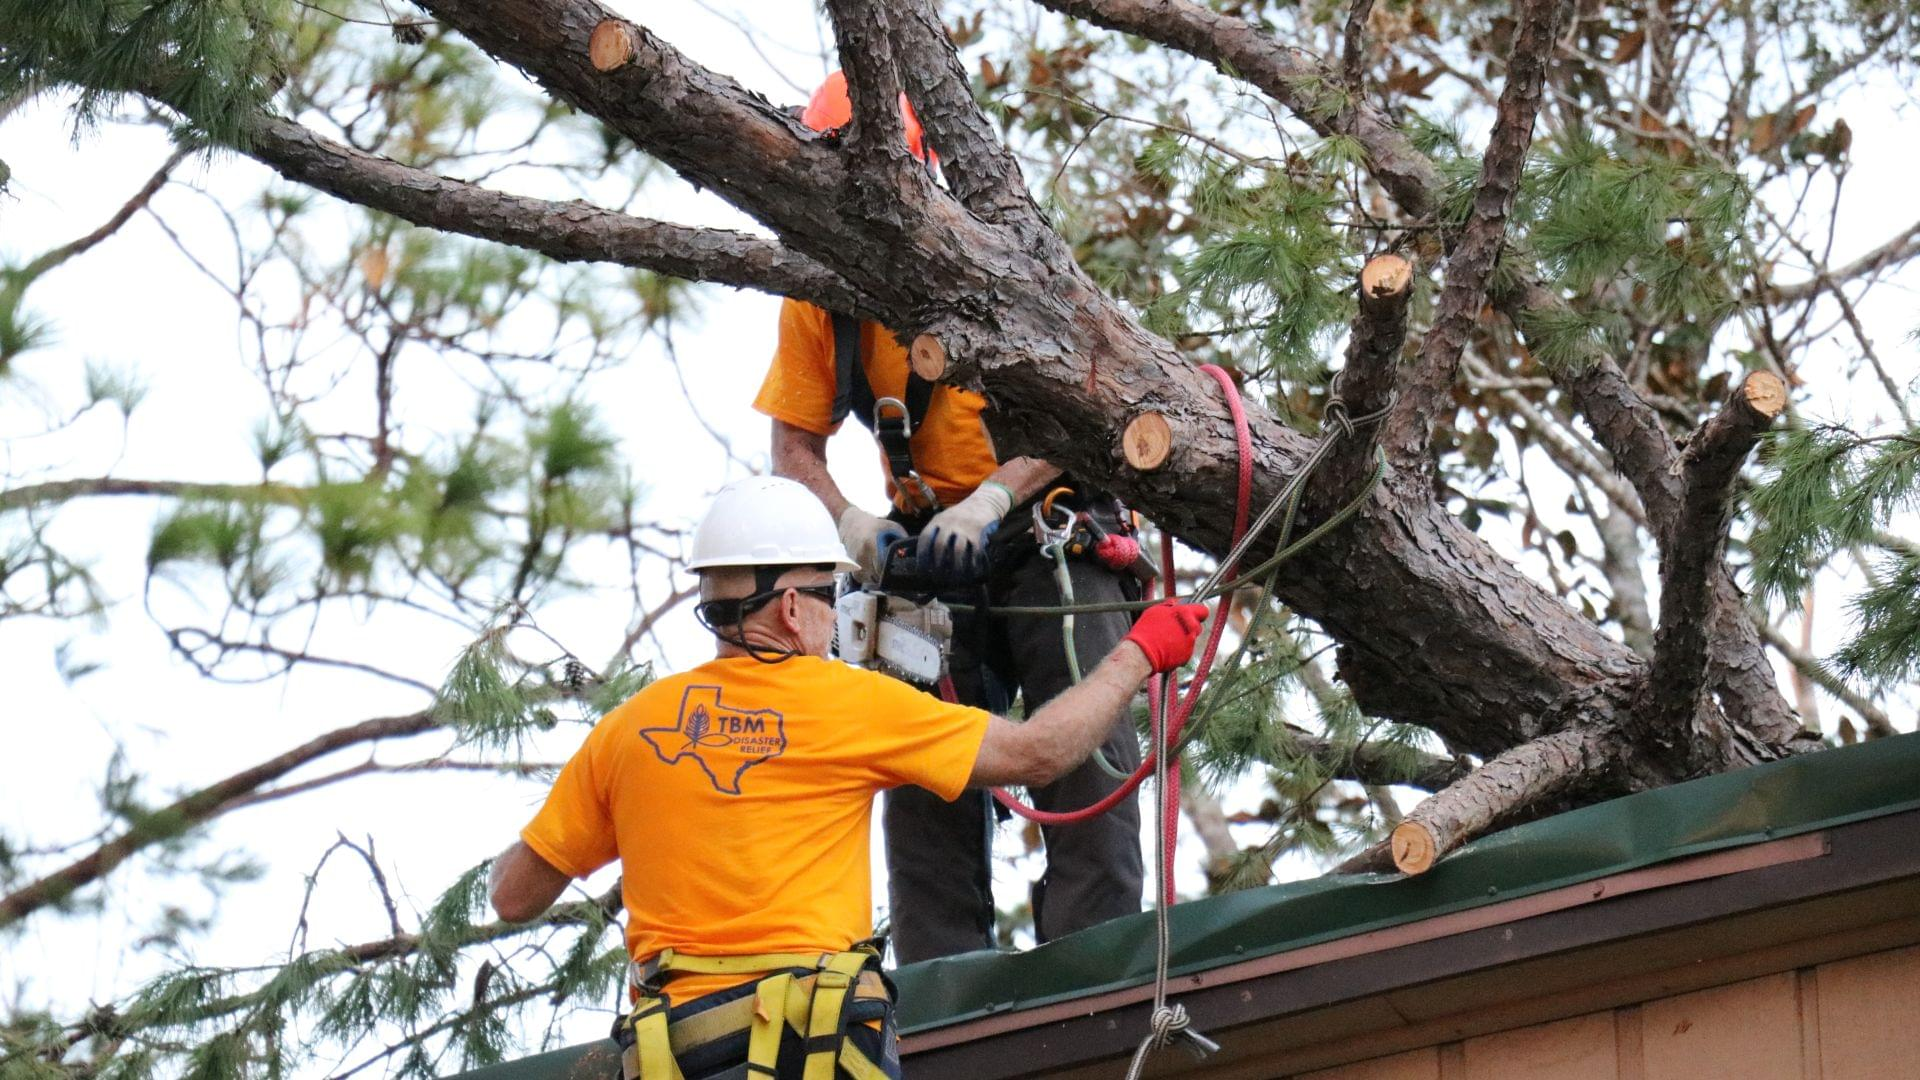 Texas Baptist Men Set Up to Help Those Affected by Tropical Storm Beta